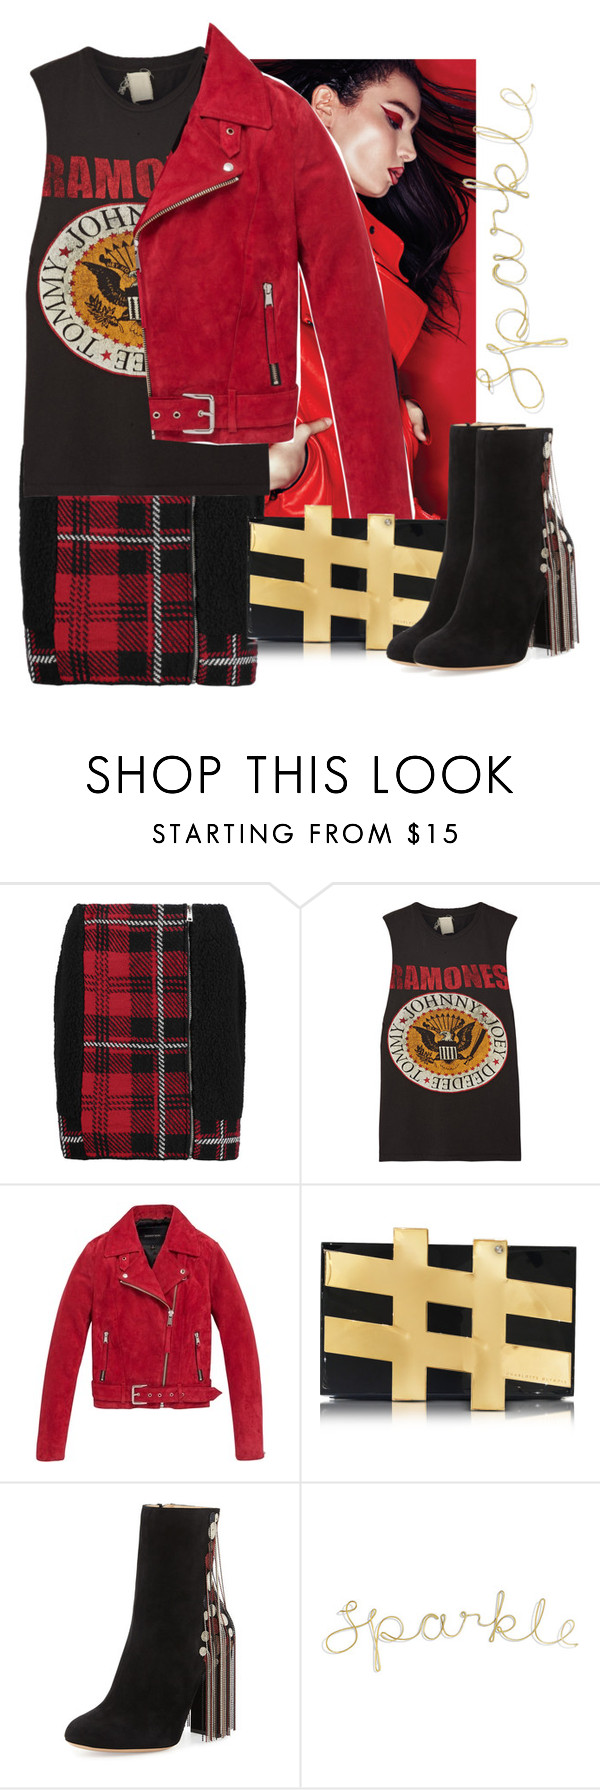 """""""Rockkk"""" by bibi-b ❤ liked on Polyvore featuring M Missoni, MadeWorn, Andrew Marc, Charlotte Olympia and Chloé"""